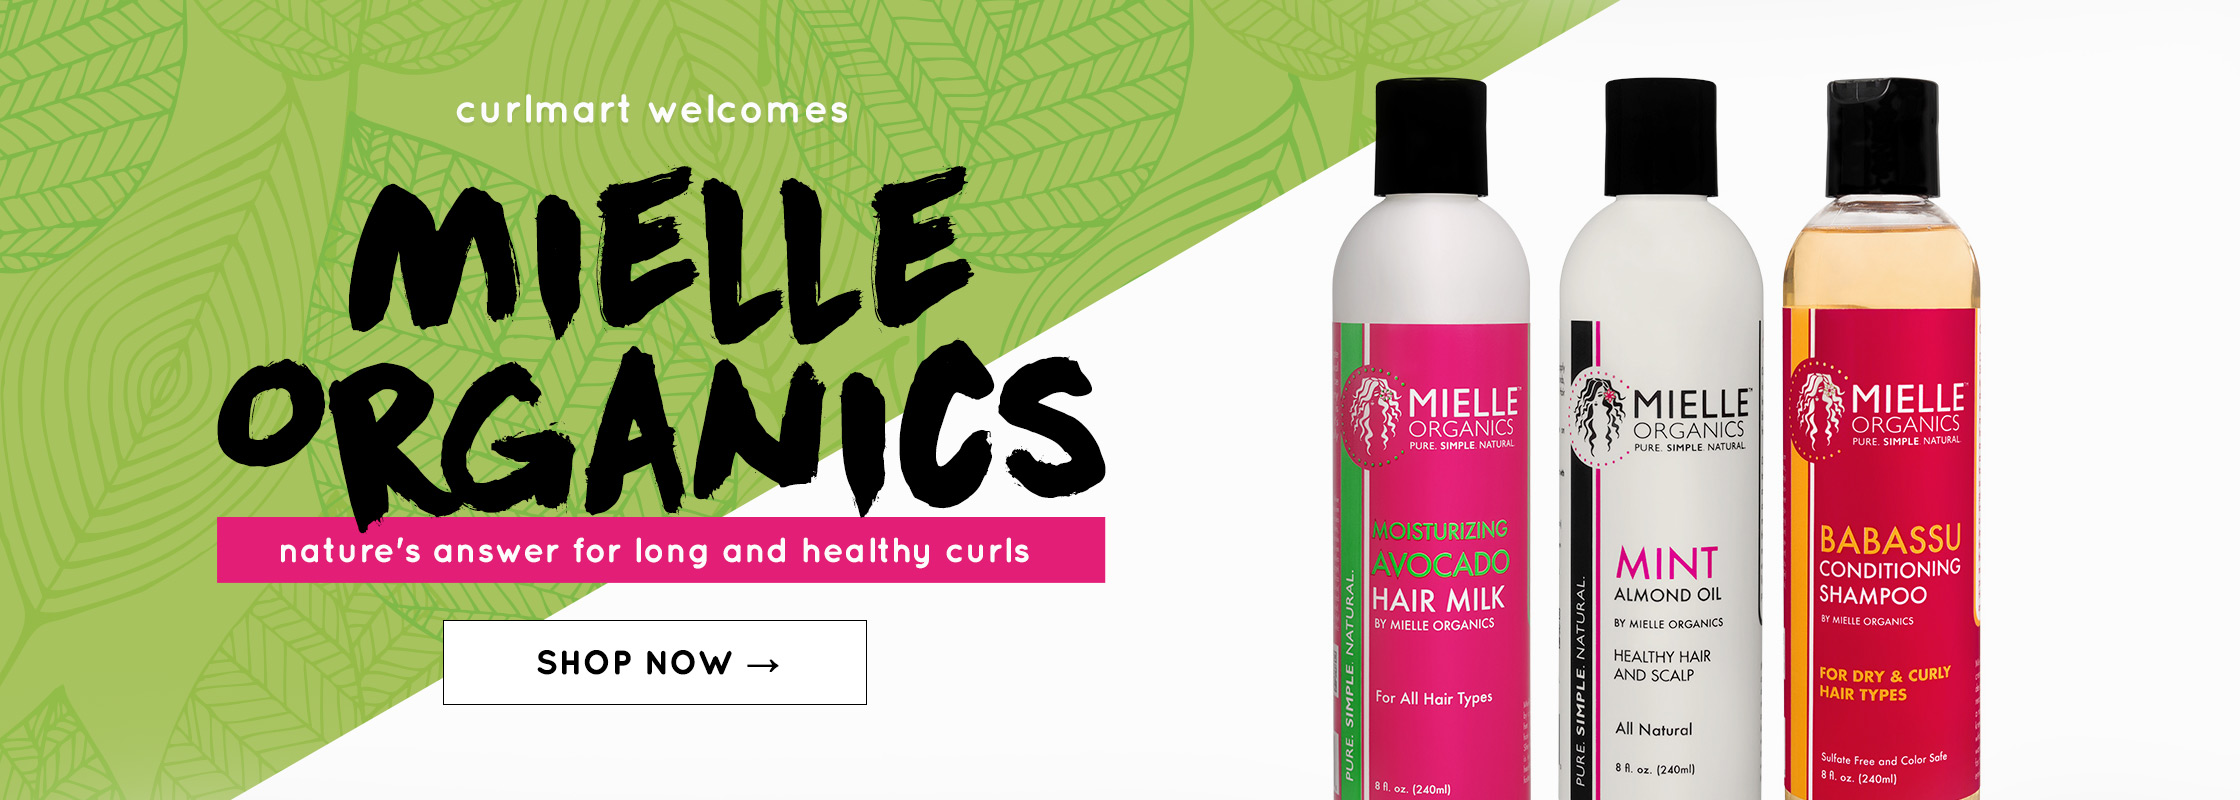 http://cdn3.bigcommerce.com/s-ah05h/product_images/uploaded_images/mielle-organics-highlight-mobile.jpg?t=1469590887